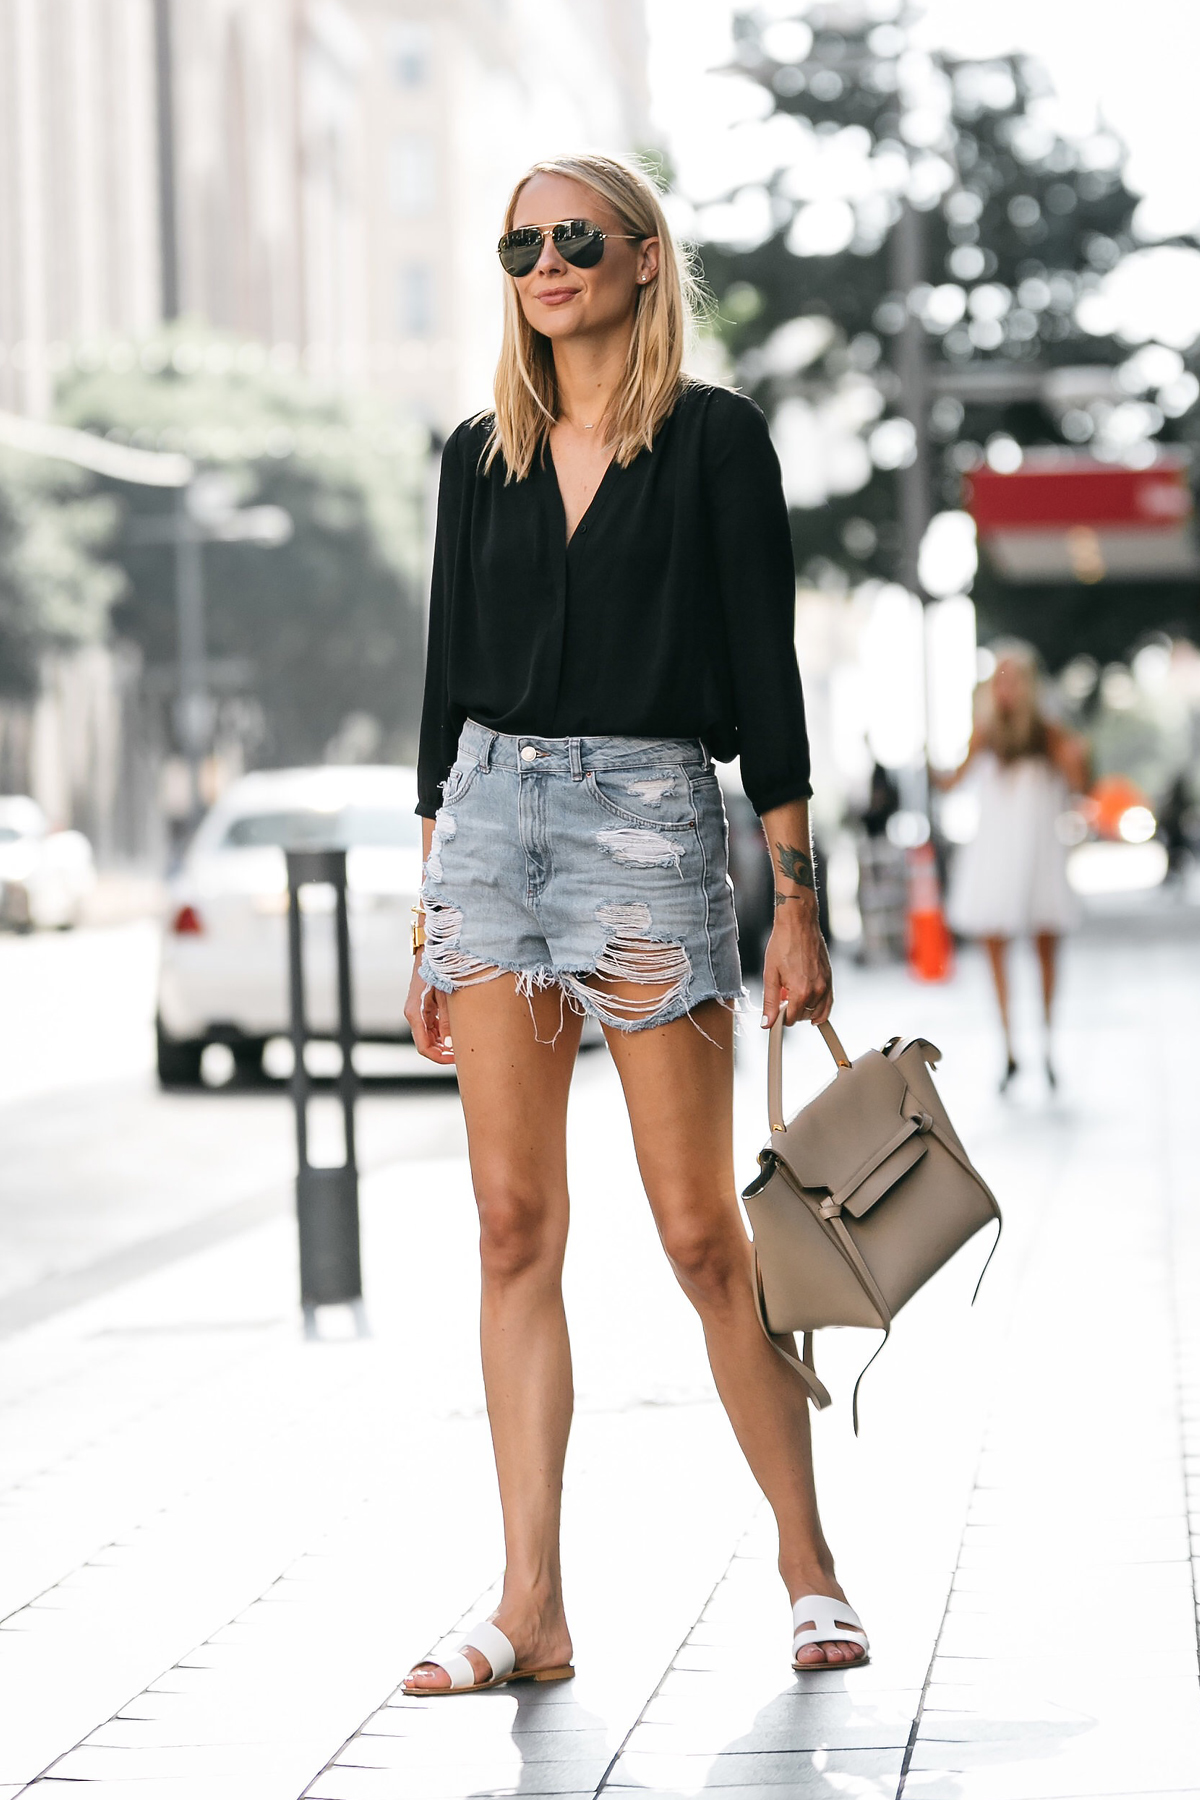 MY RIPPED DENIM SHORTS WEEKEND OUTFIT | Fashion Jackson